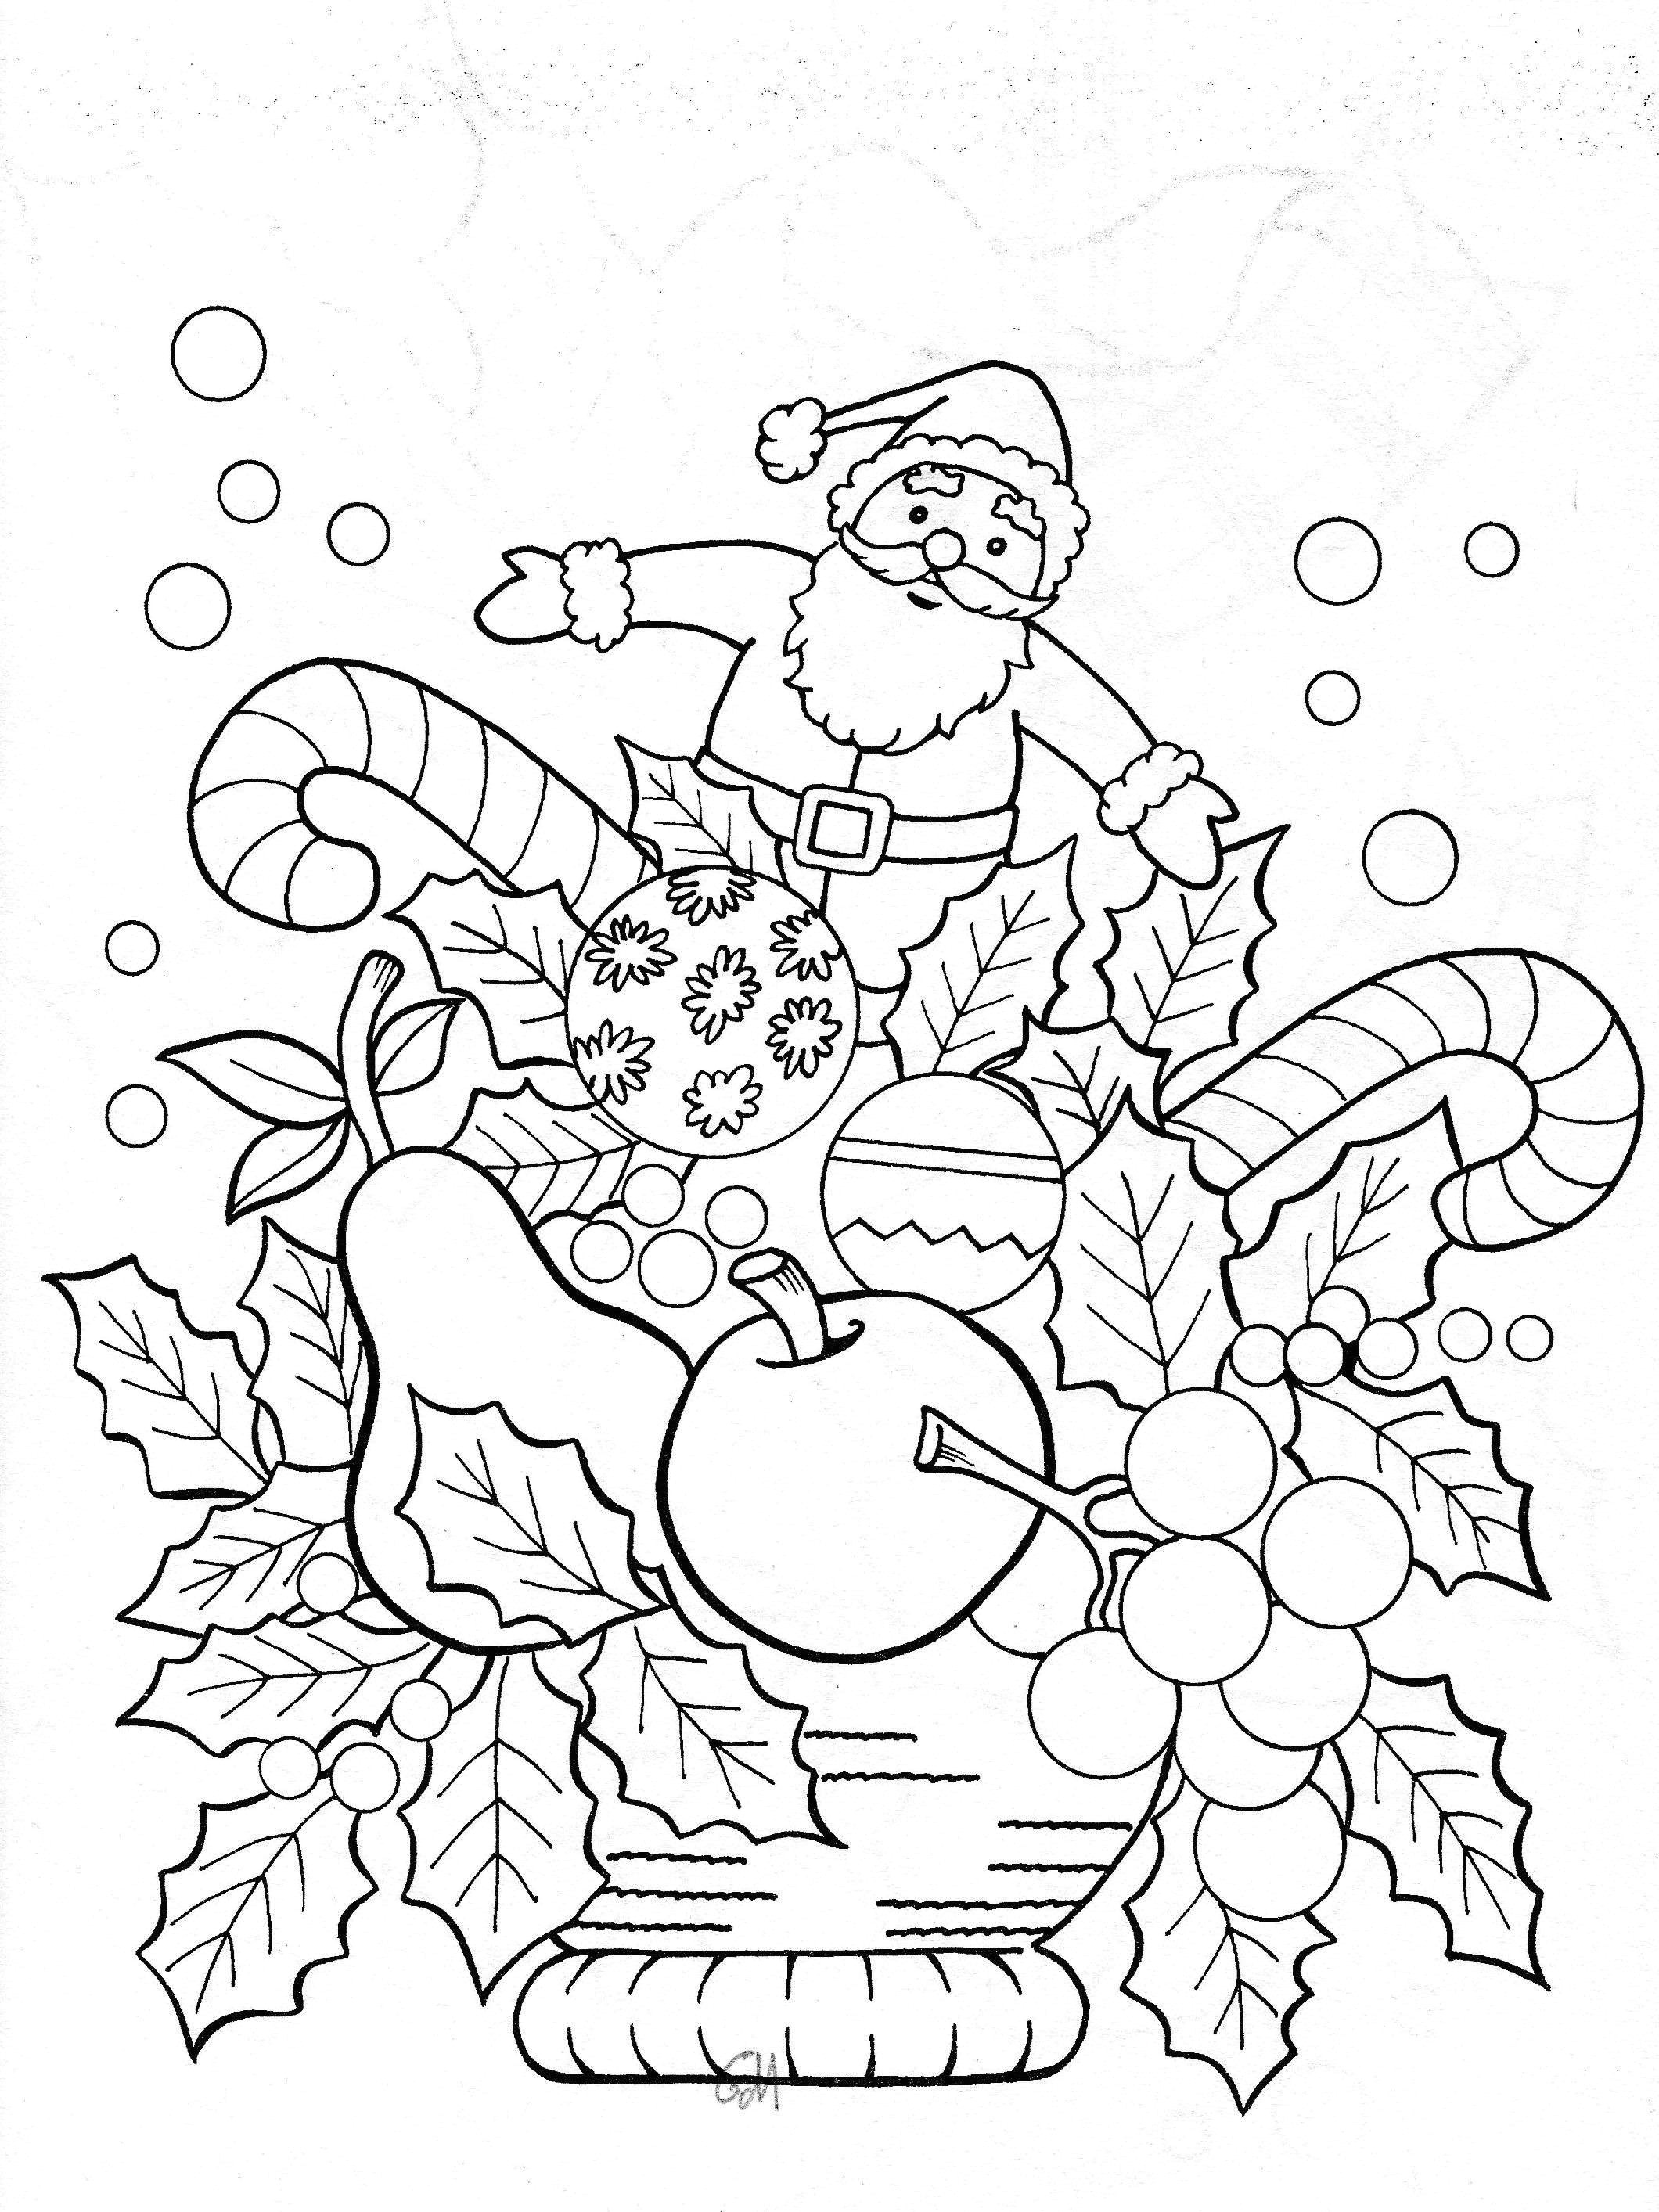 Christmas Dog Printable Coloring Pages With Animals Funny Page Cute